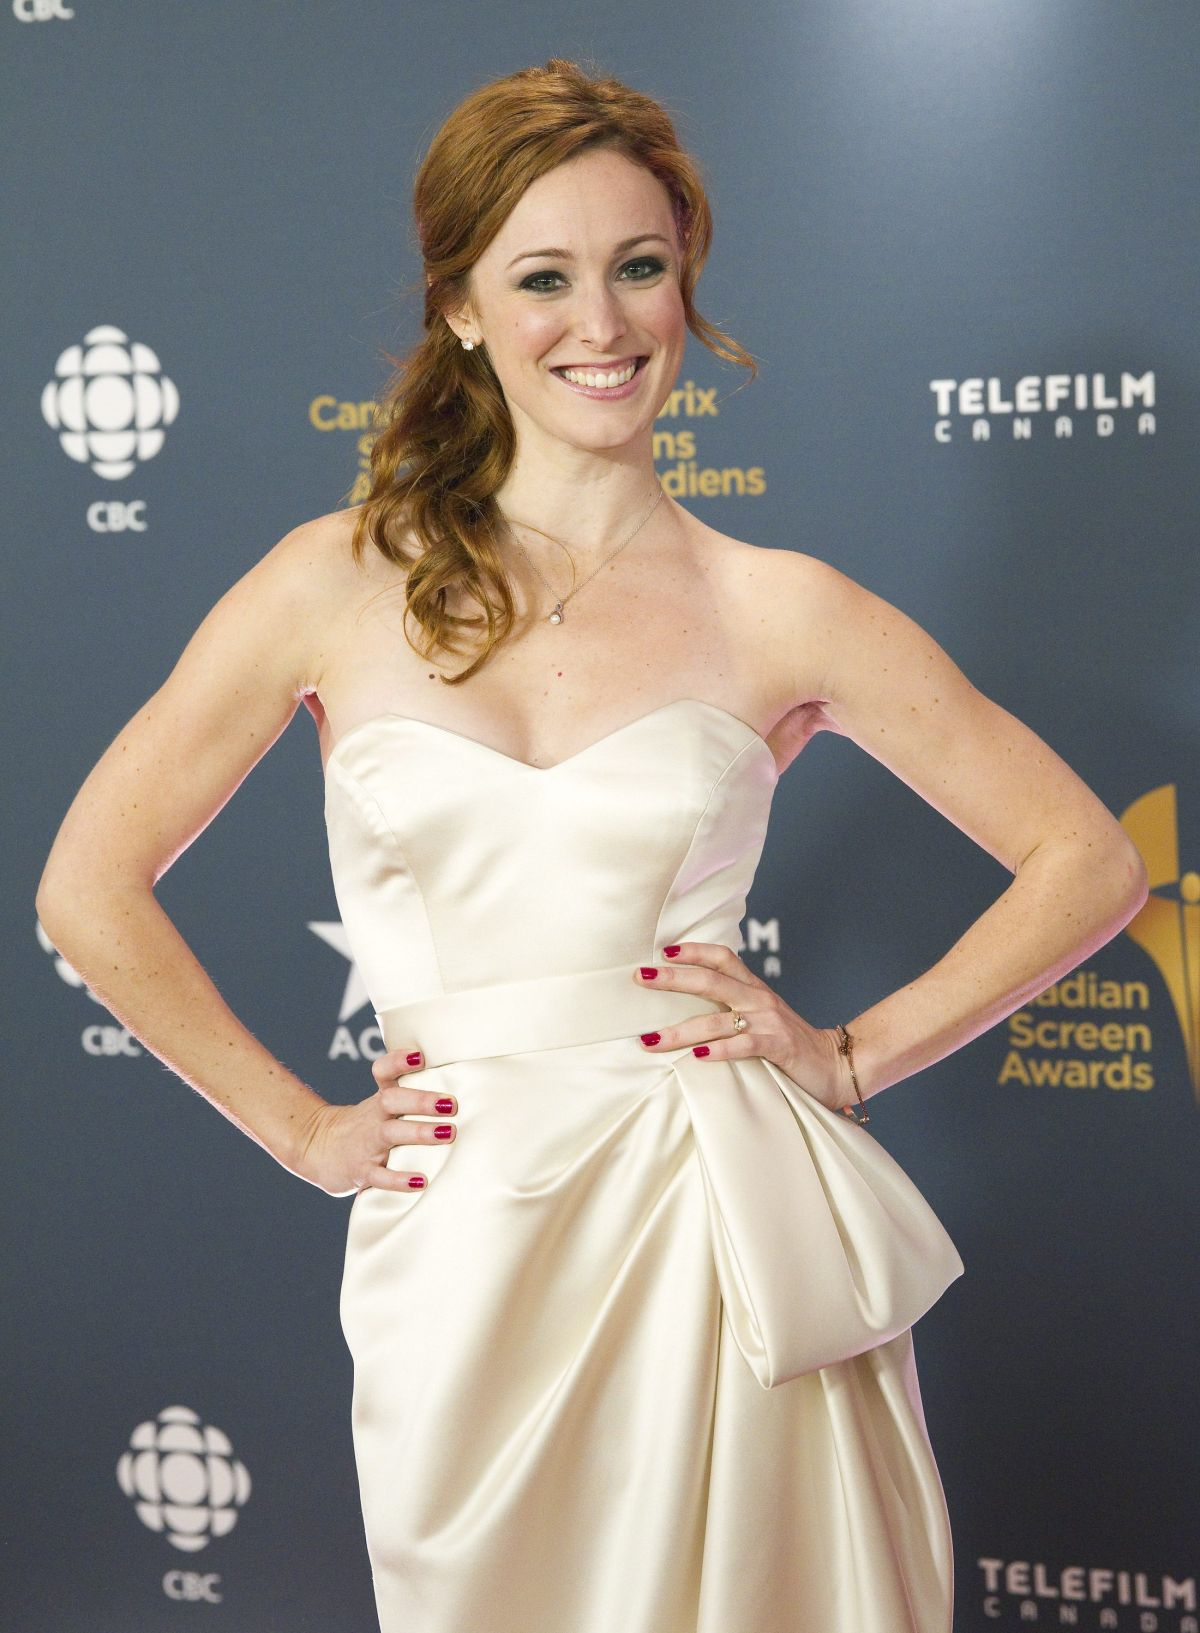 CARRIE-LYNN NEALES at 2014 Canadian Screen Awards in Toronto